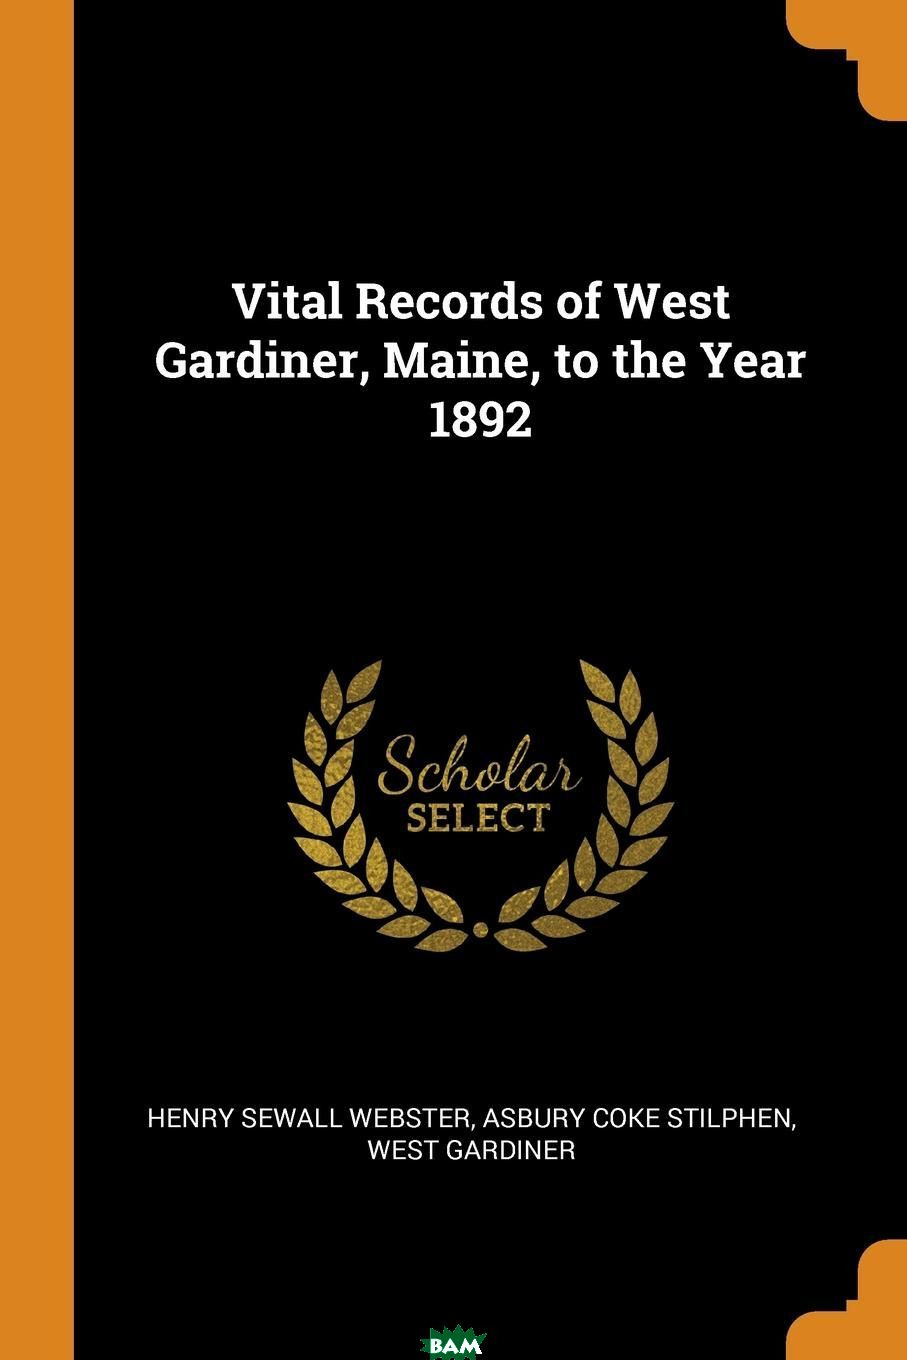 Купить Vital Records of West Gardiner, Maine, to the Year 1892, Henry Sewall Webster, Asbury Coke Stilphen, West Gardiner, 9780353020313